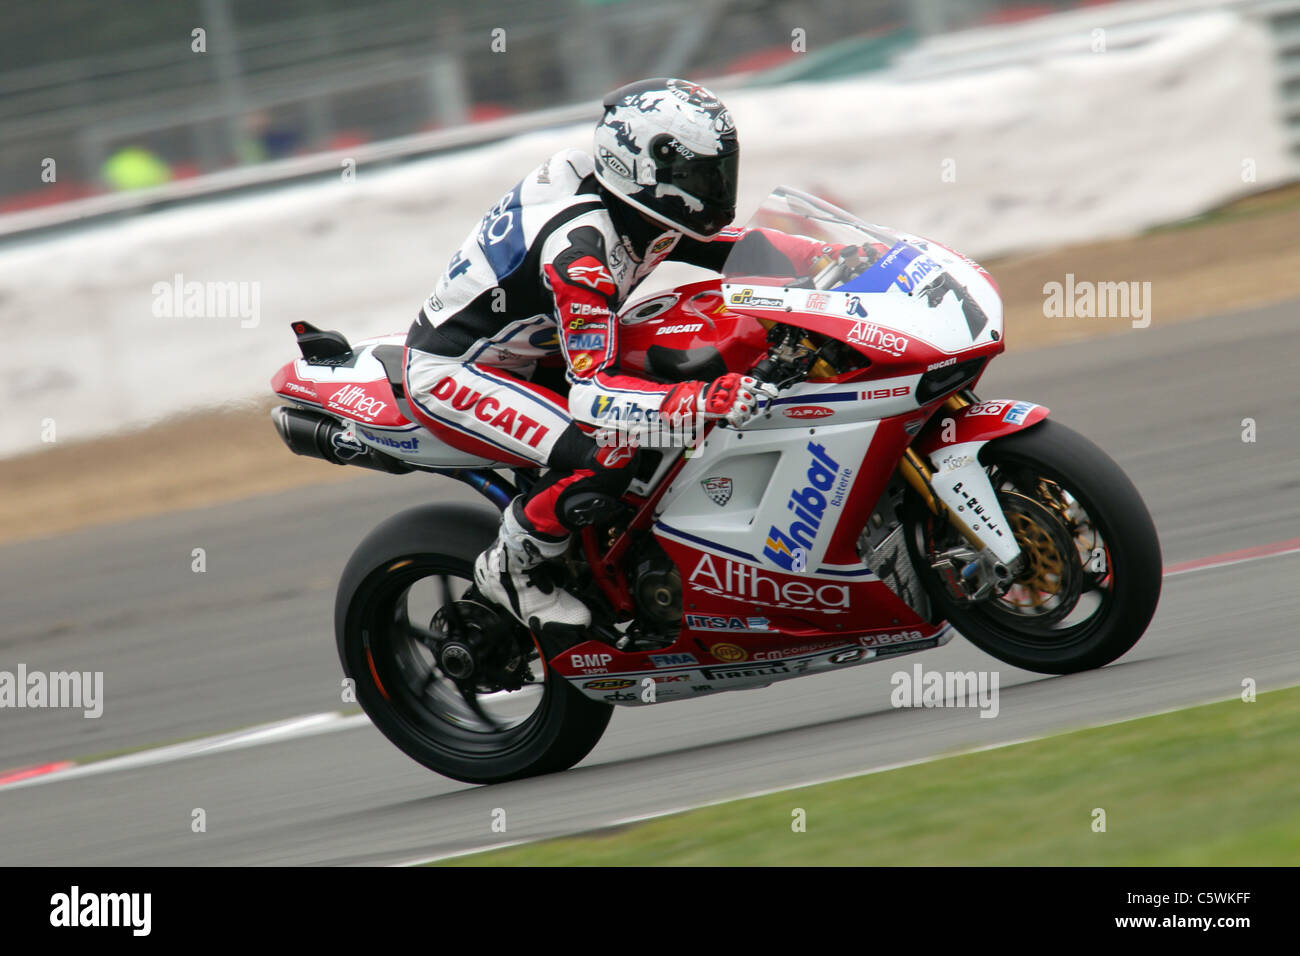 Carlos Checa during Friday practice at Silverstone Stock Photo